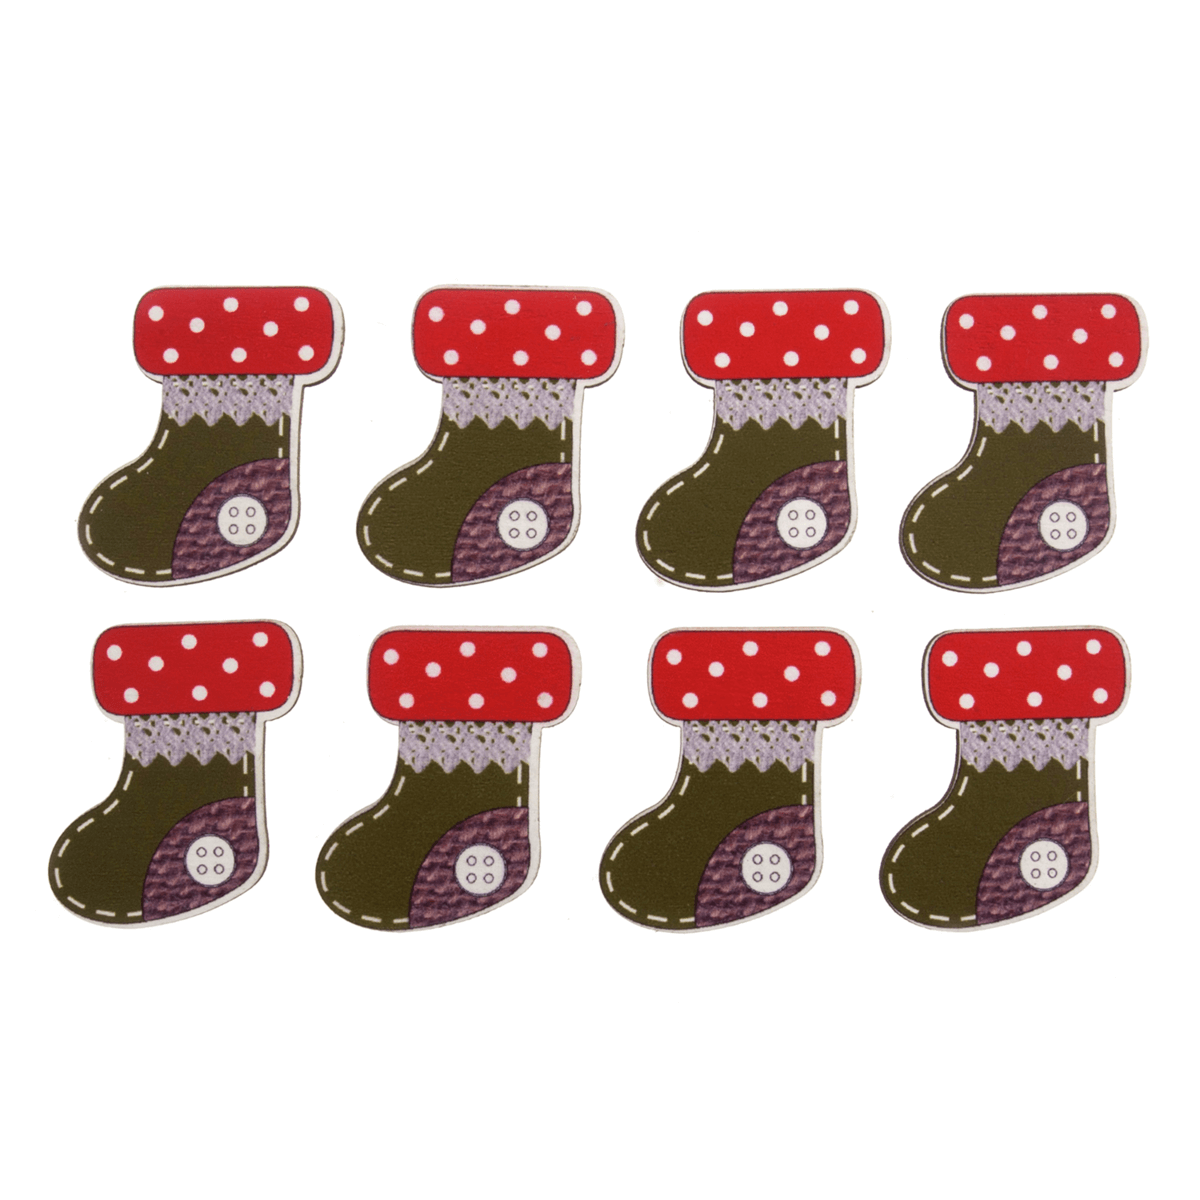 8 x Christmas Wooden Stocking Craft Embellishments Scrap booking